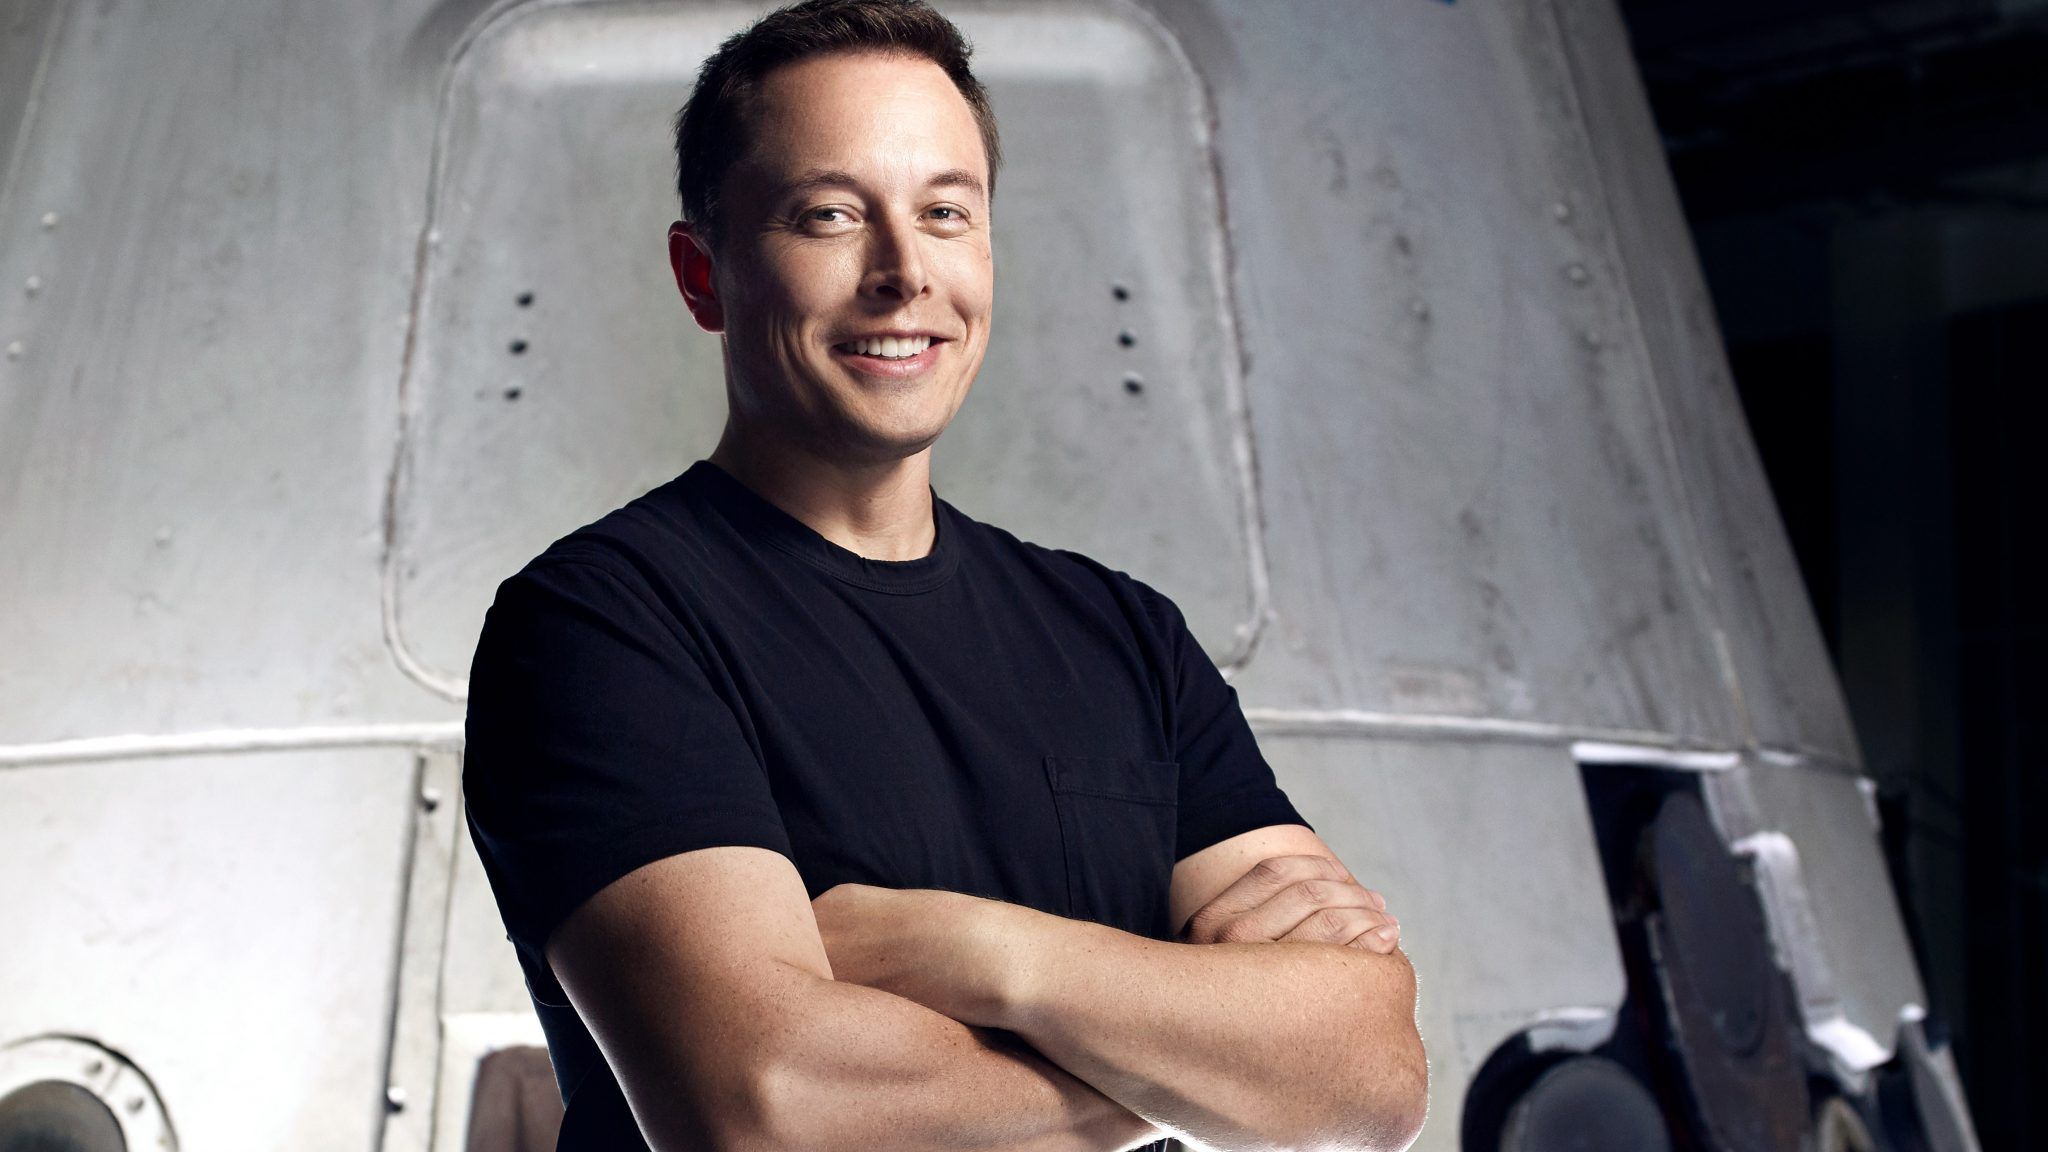 Elon Musk sends the Bitcoin community into jubilance with his recent tweet